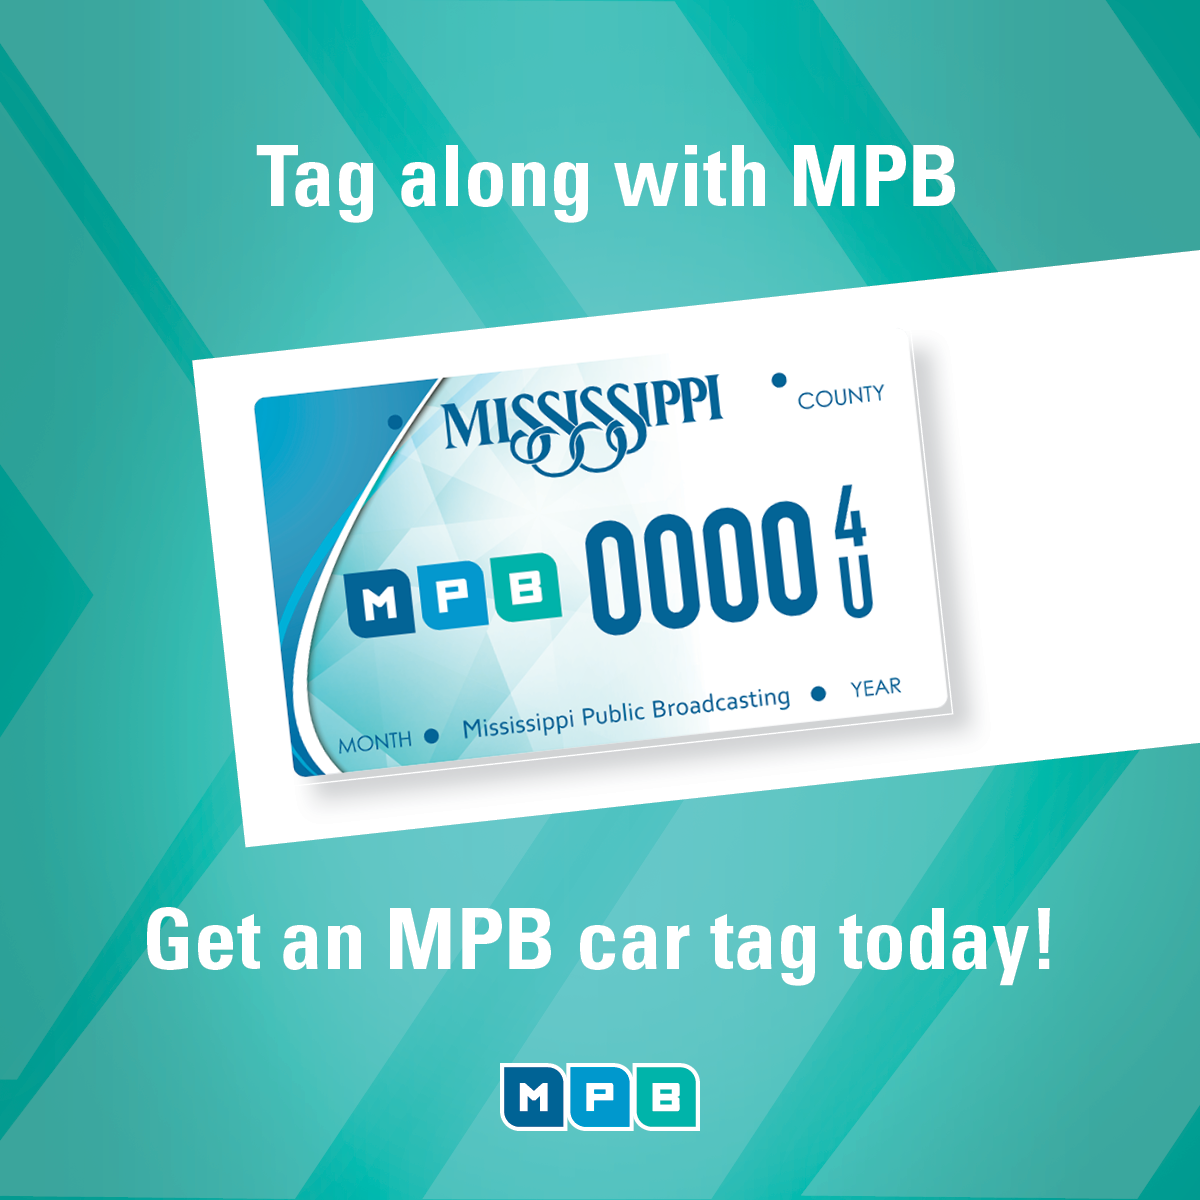 Tag along with MPB with the MPB Car Tag!